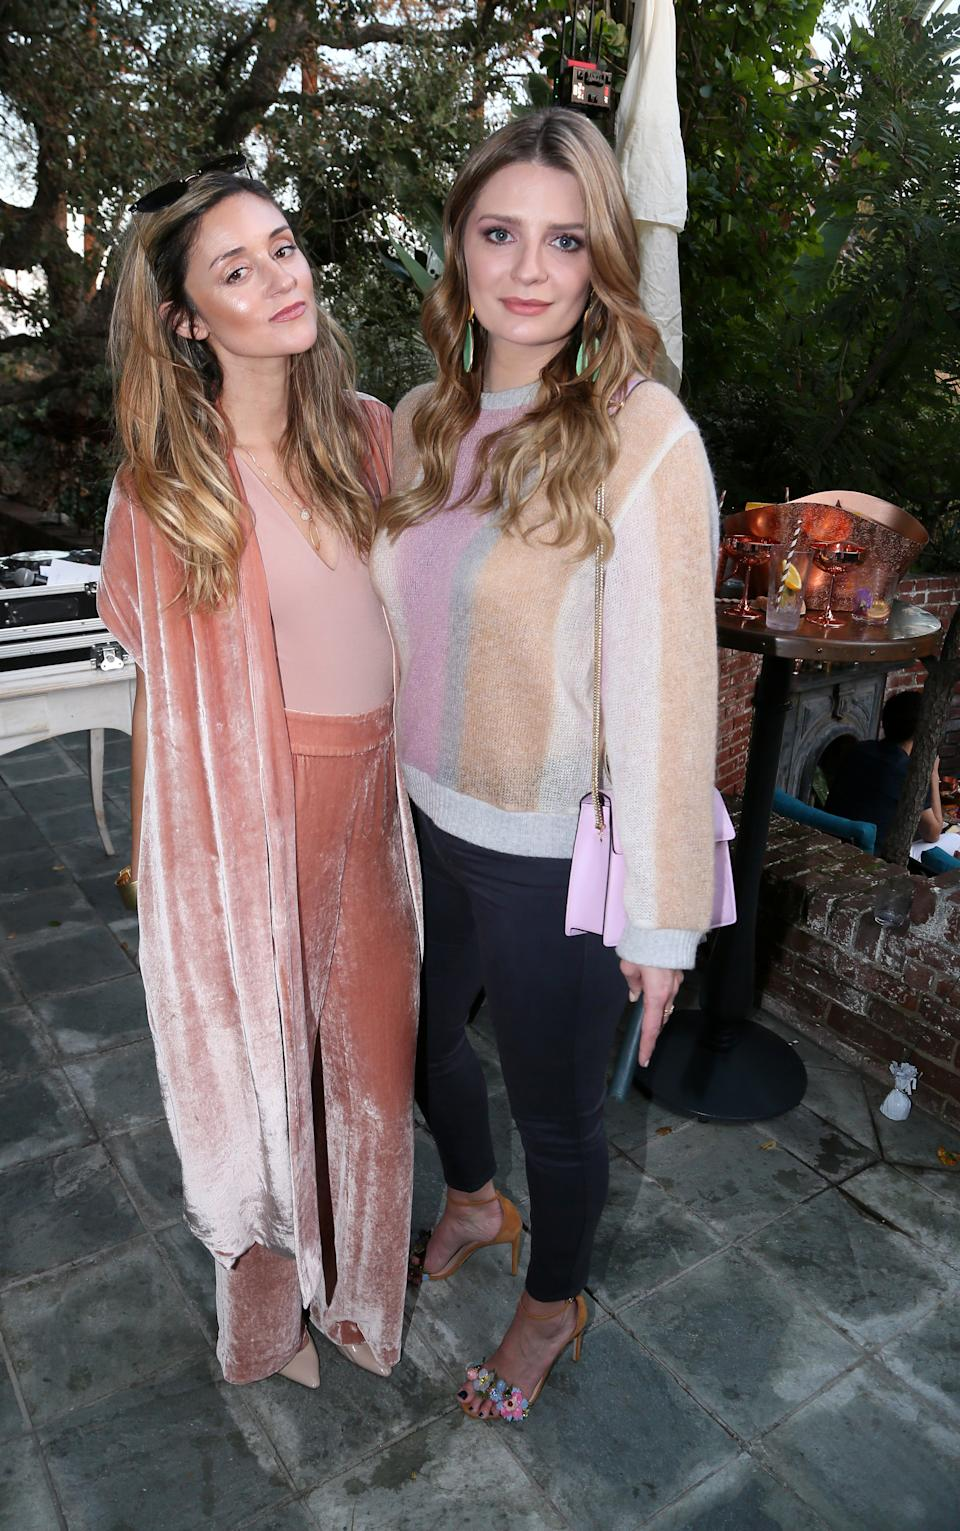 LOS ANGELES, CALIFORNIA - DECEMBER 12: Caroline D'Amore and Mischa Barton attend the PREY SWIM 'Summer in December' Fashion Show  hosted by Audrina Patridge at the residence of Jonas Tahlin, CEO Of Absolut Elyx on December 12, 2018 in Los Angeles, California. (Photo by Gabriel Olsen/Getty Images for Absolut Elyx )